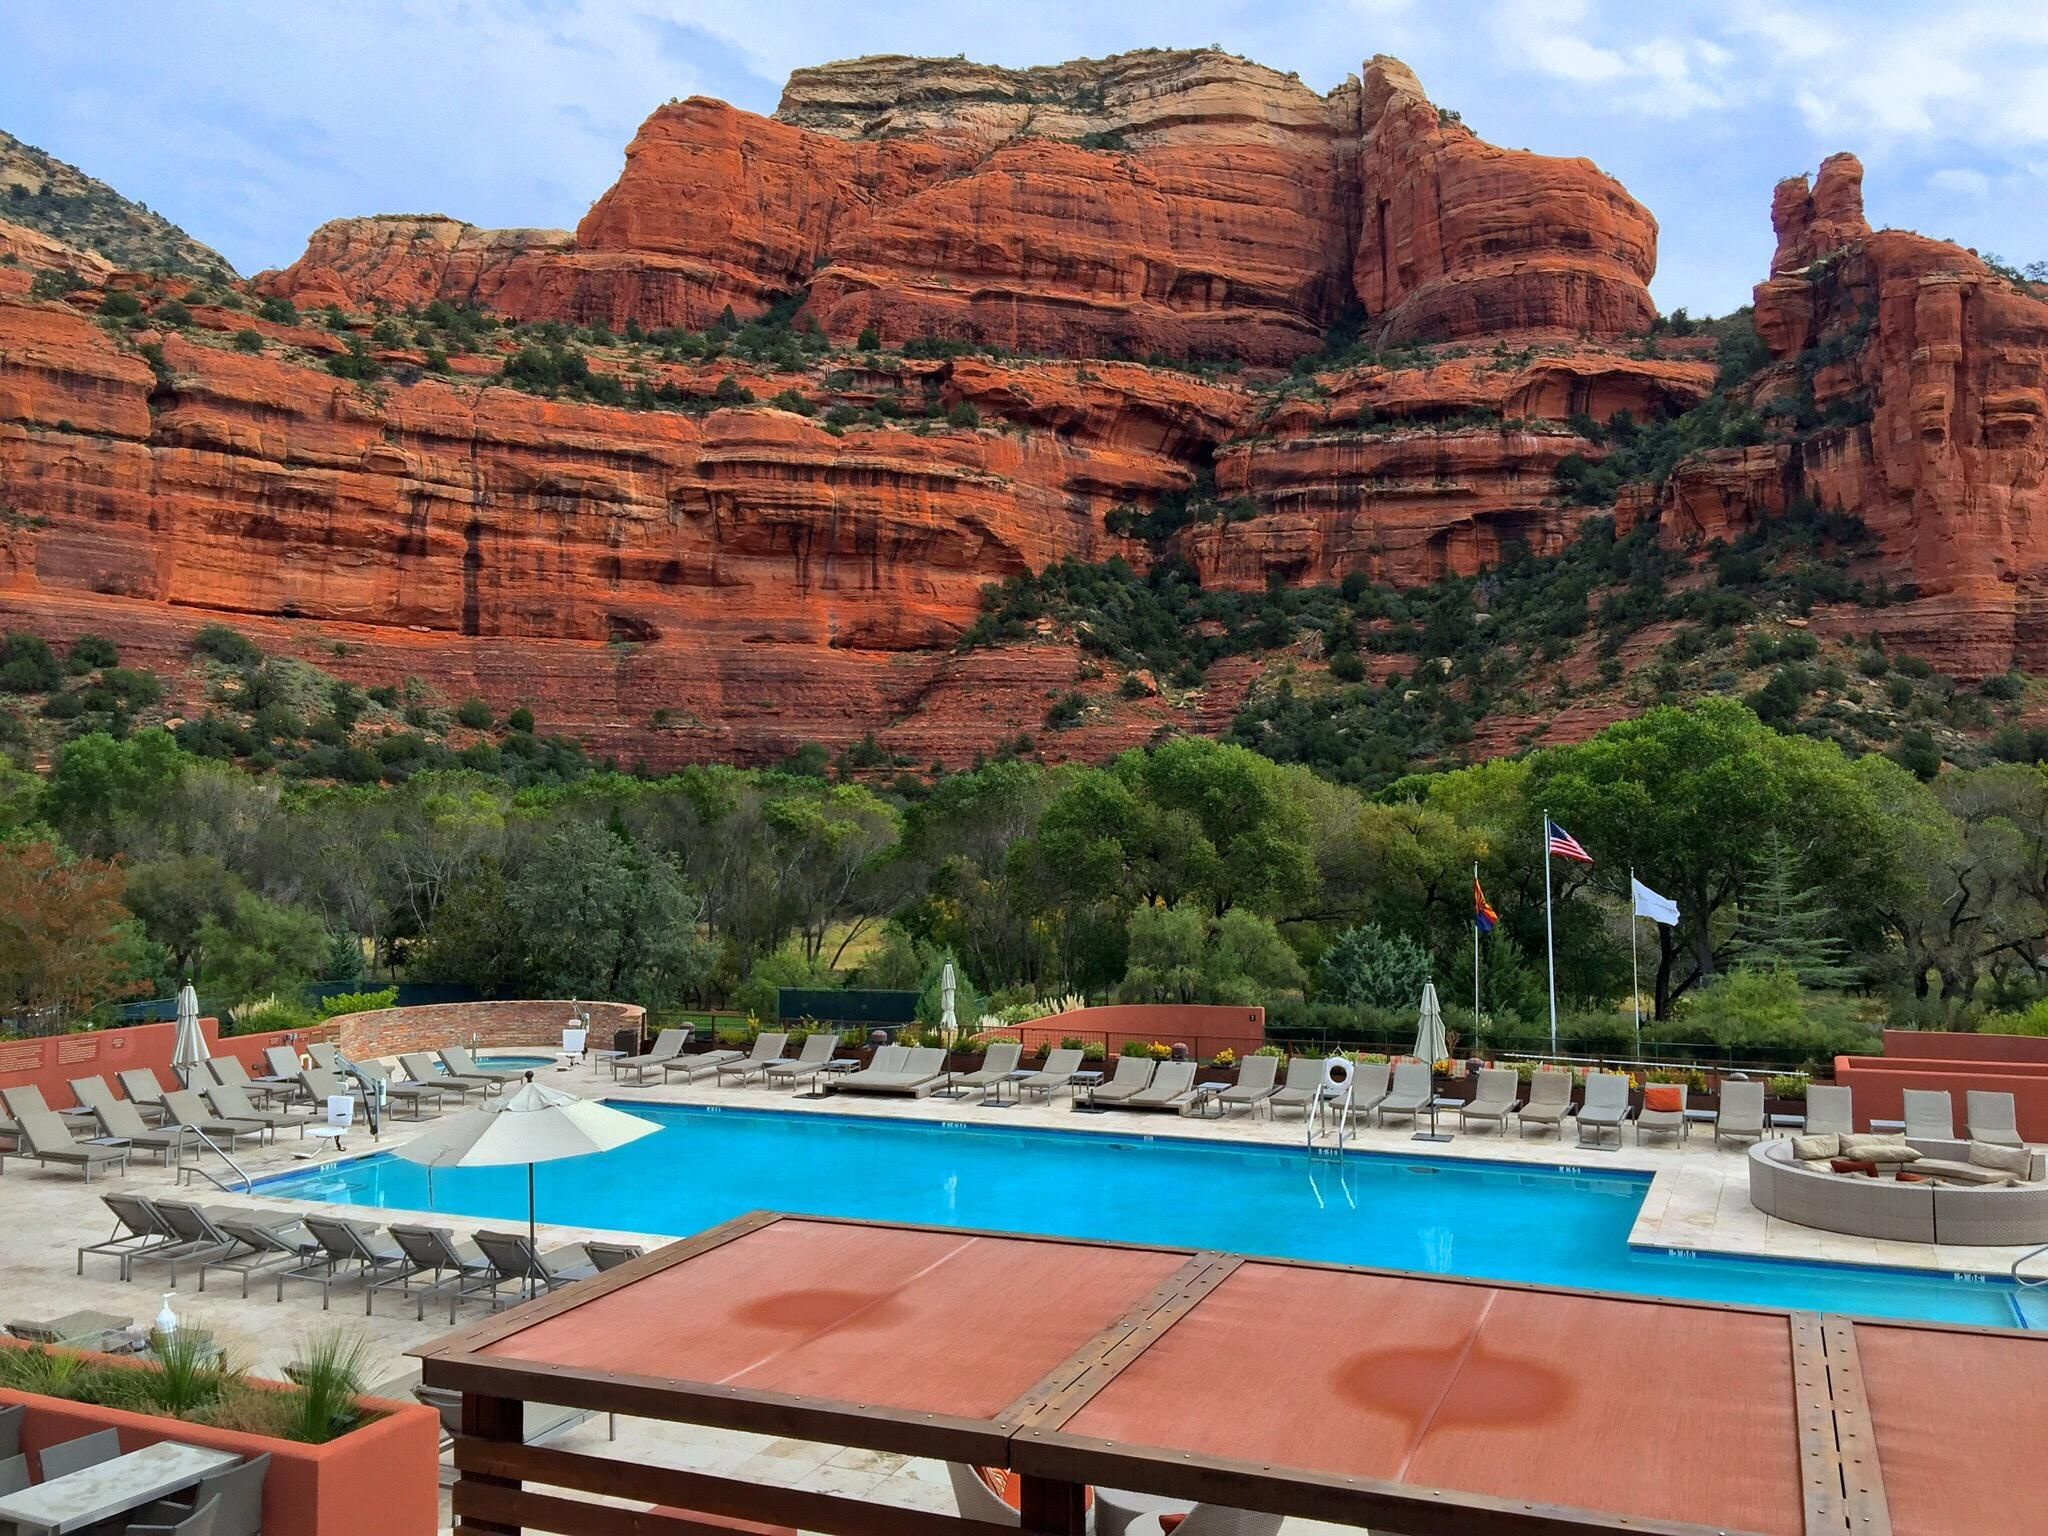 enchantment resort sedona az deals lamoureph blog. Black Bedroom Furniture Sets. Home Design Ideas